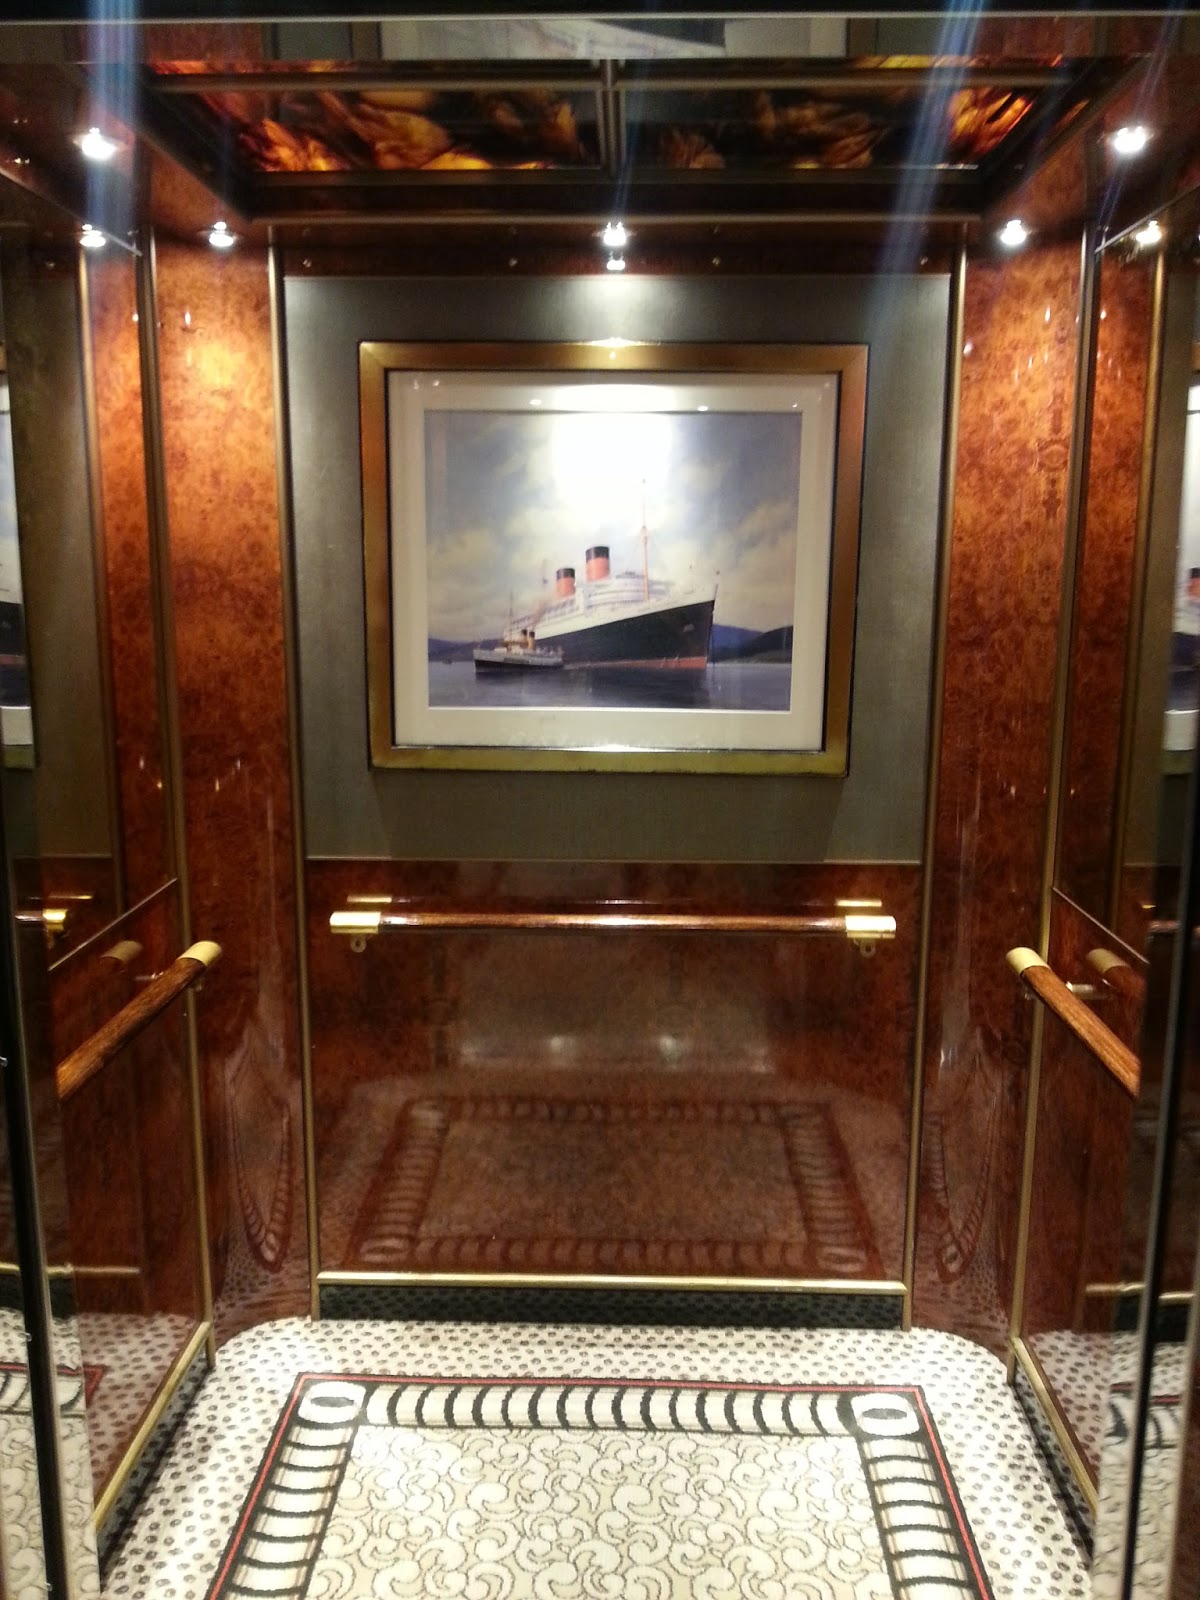 Queen Mary 2 (QM2) - Passenger Lift